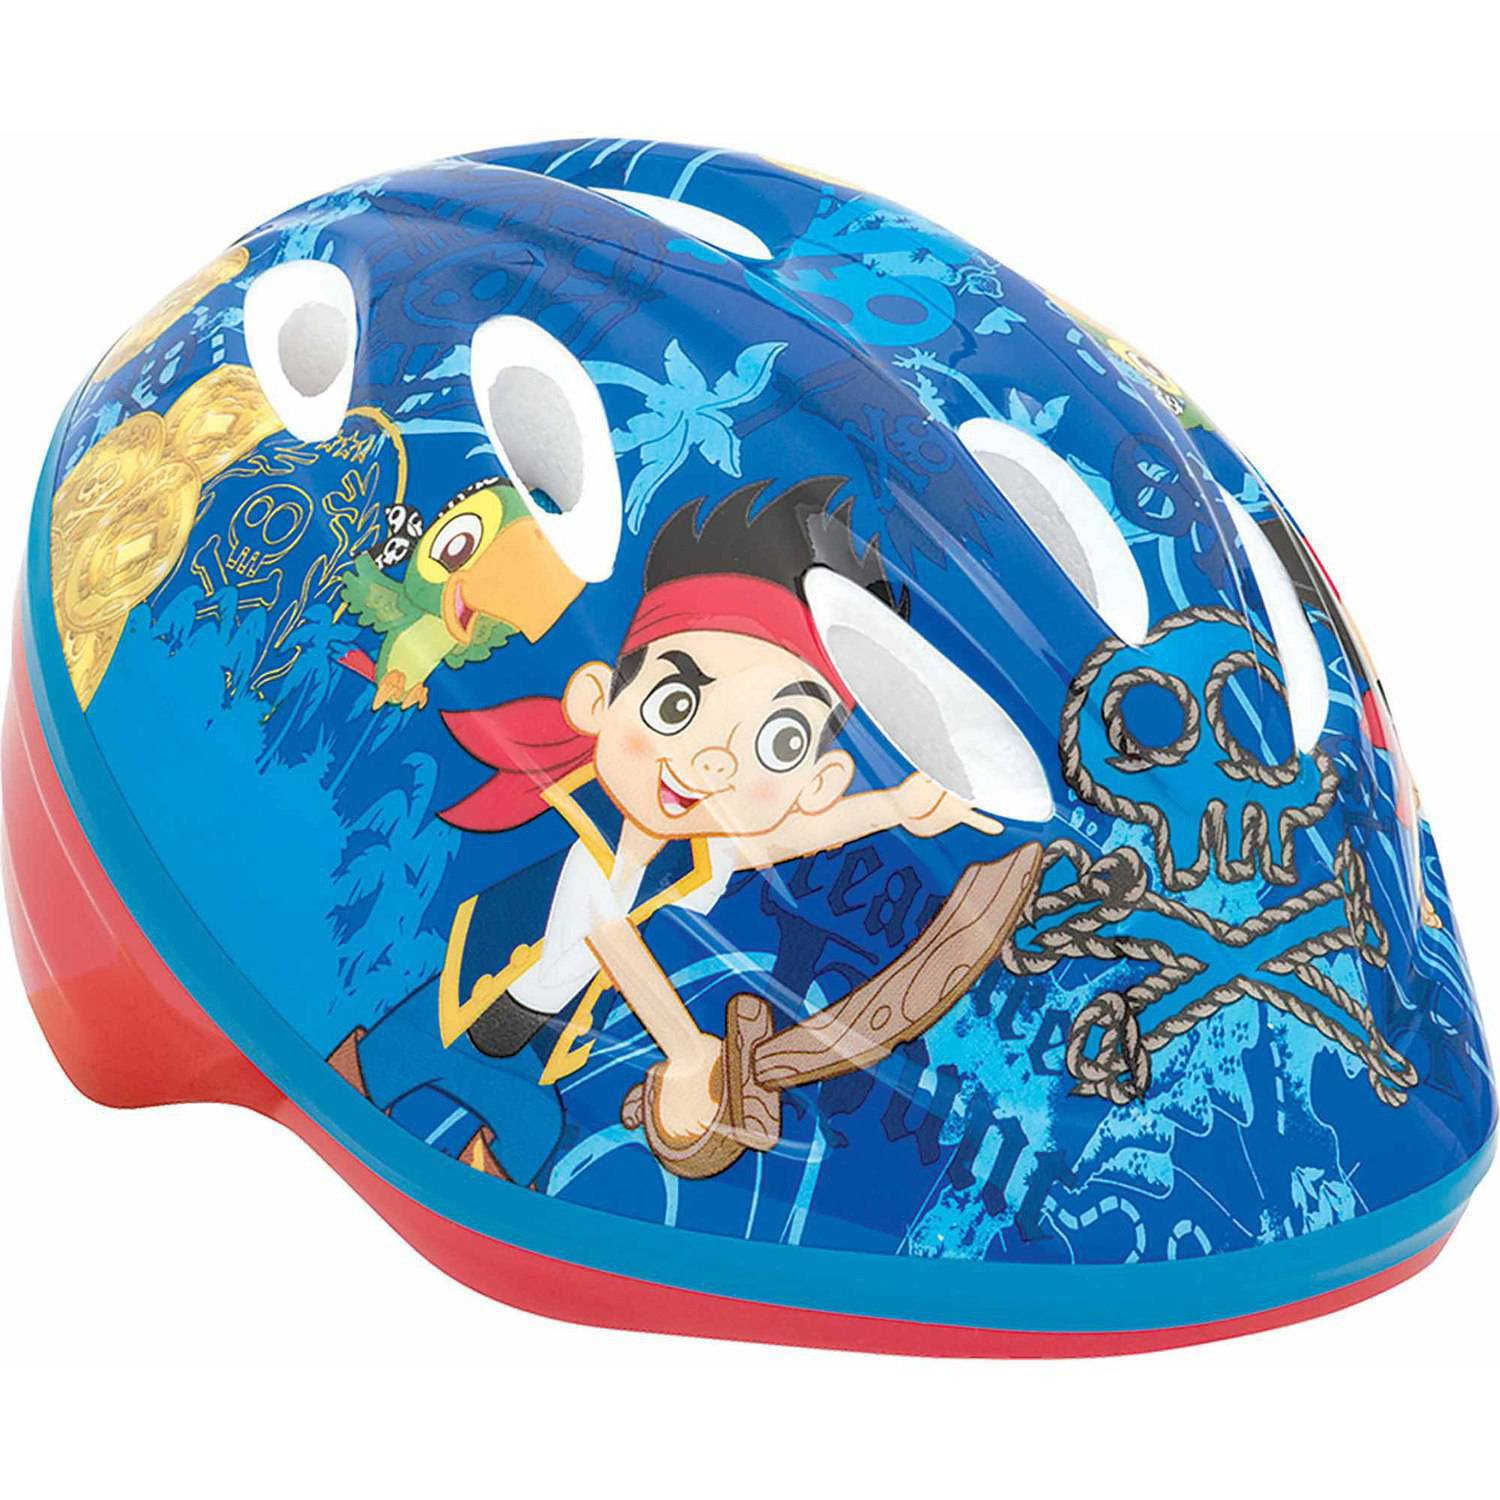 Disney Jake and the Never Land Pirates Toddler Helmet, Blue